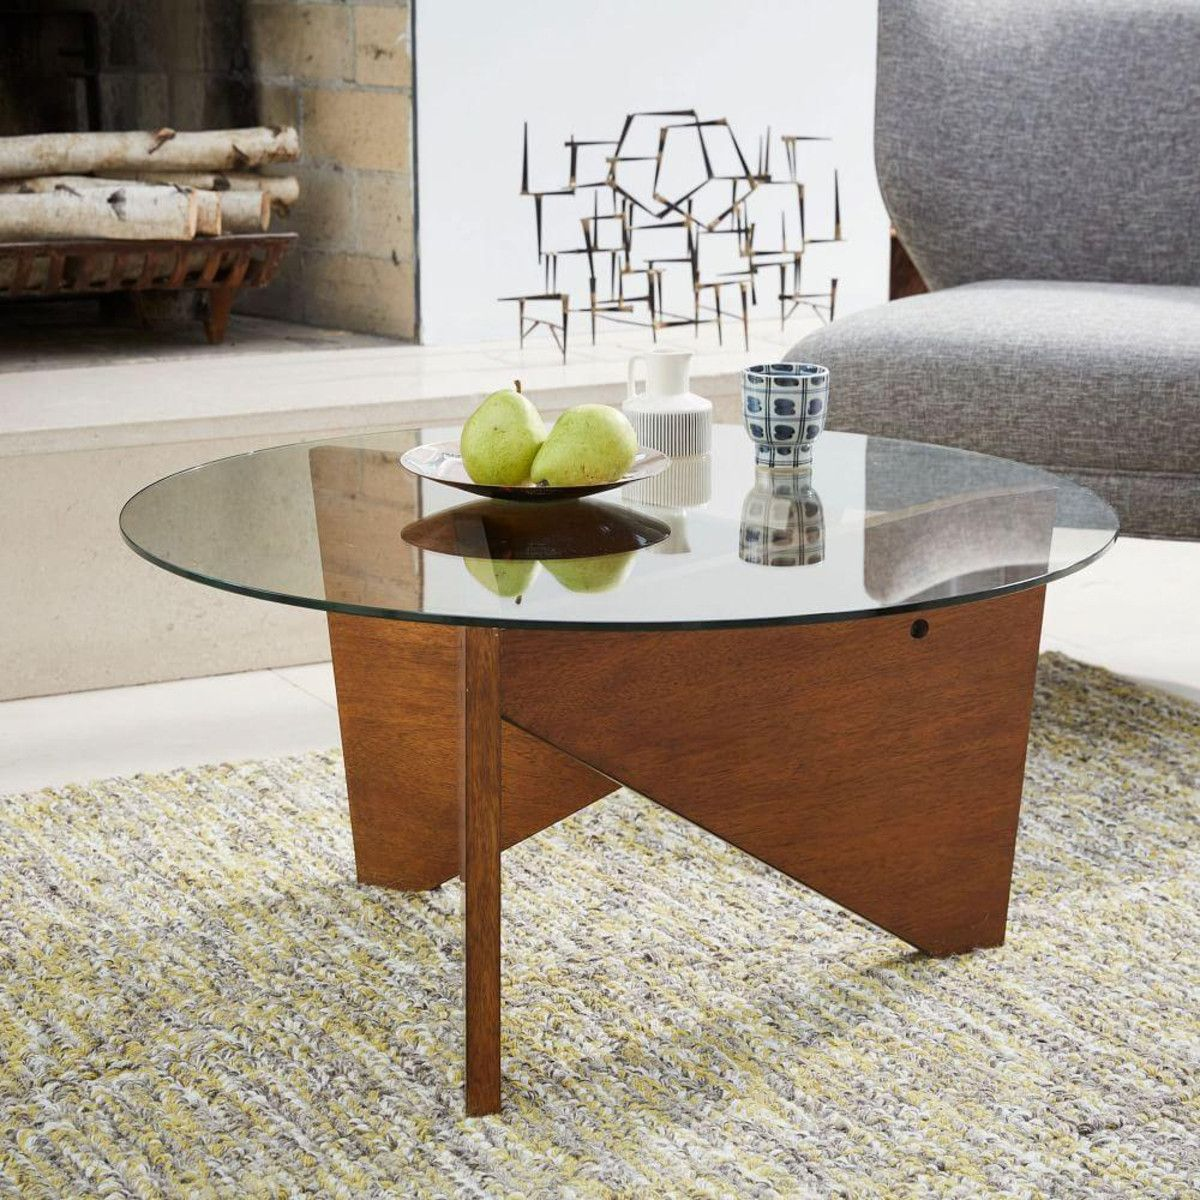 Places To Coffee Tables Sail Coffee Table Study Pinterest Home Places And The Ojays